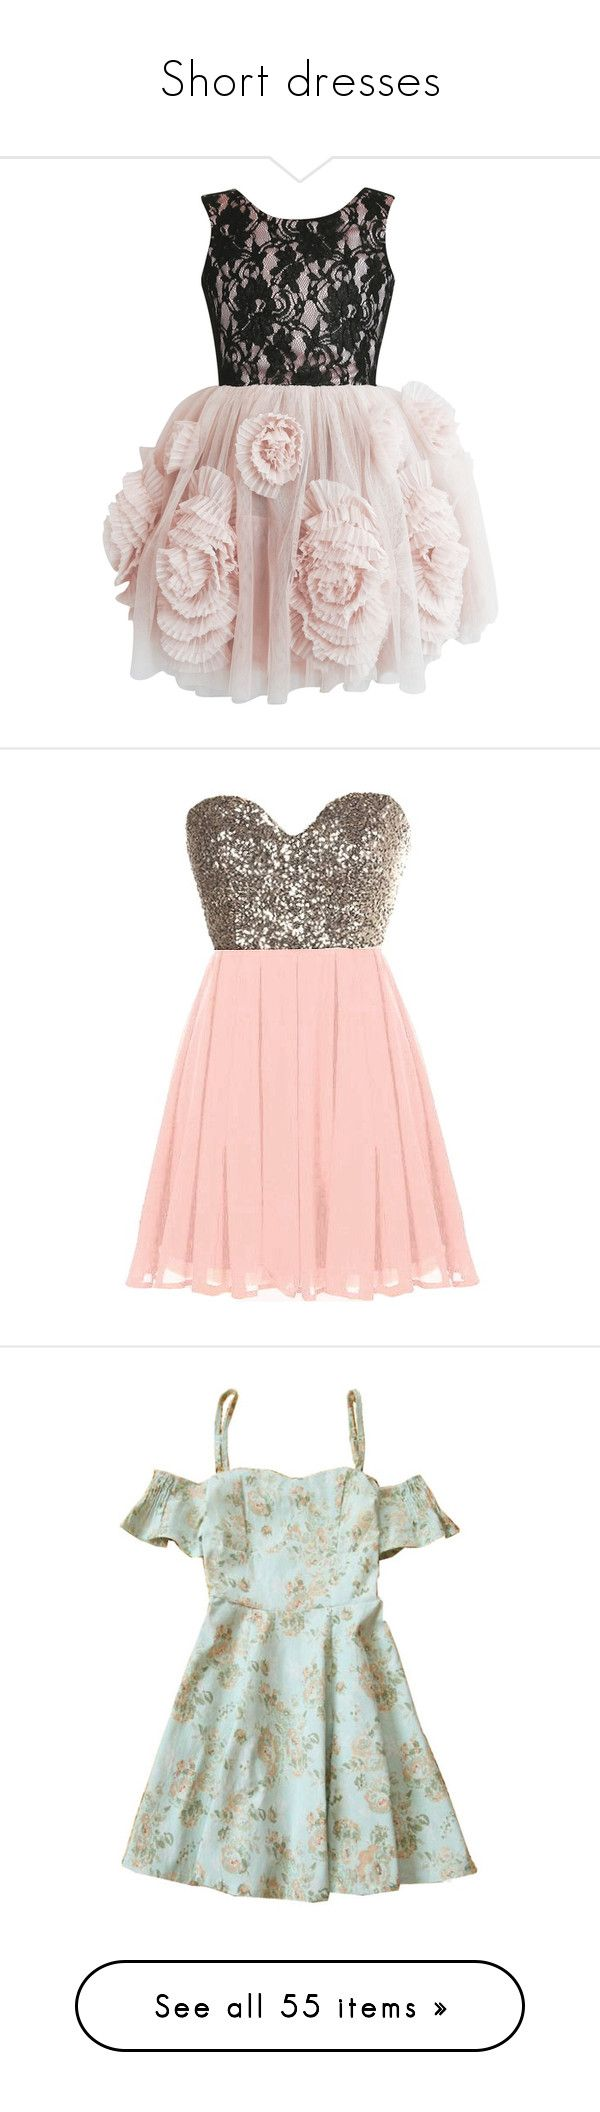 """""""Short dresses"""" by connectedbylove ❤ liked on Polyvore featuring dresses, petite prom dresses, petite lace dress, lace prom dresses, bridal party dresses, petite dresses, sweetheart dress, pink gold dress, pink glitter dress and gold dress"""